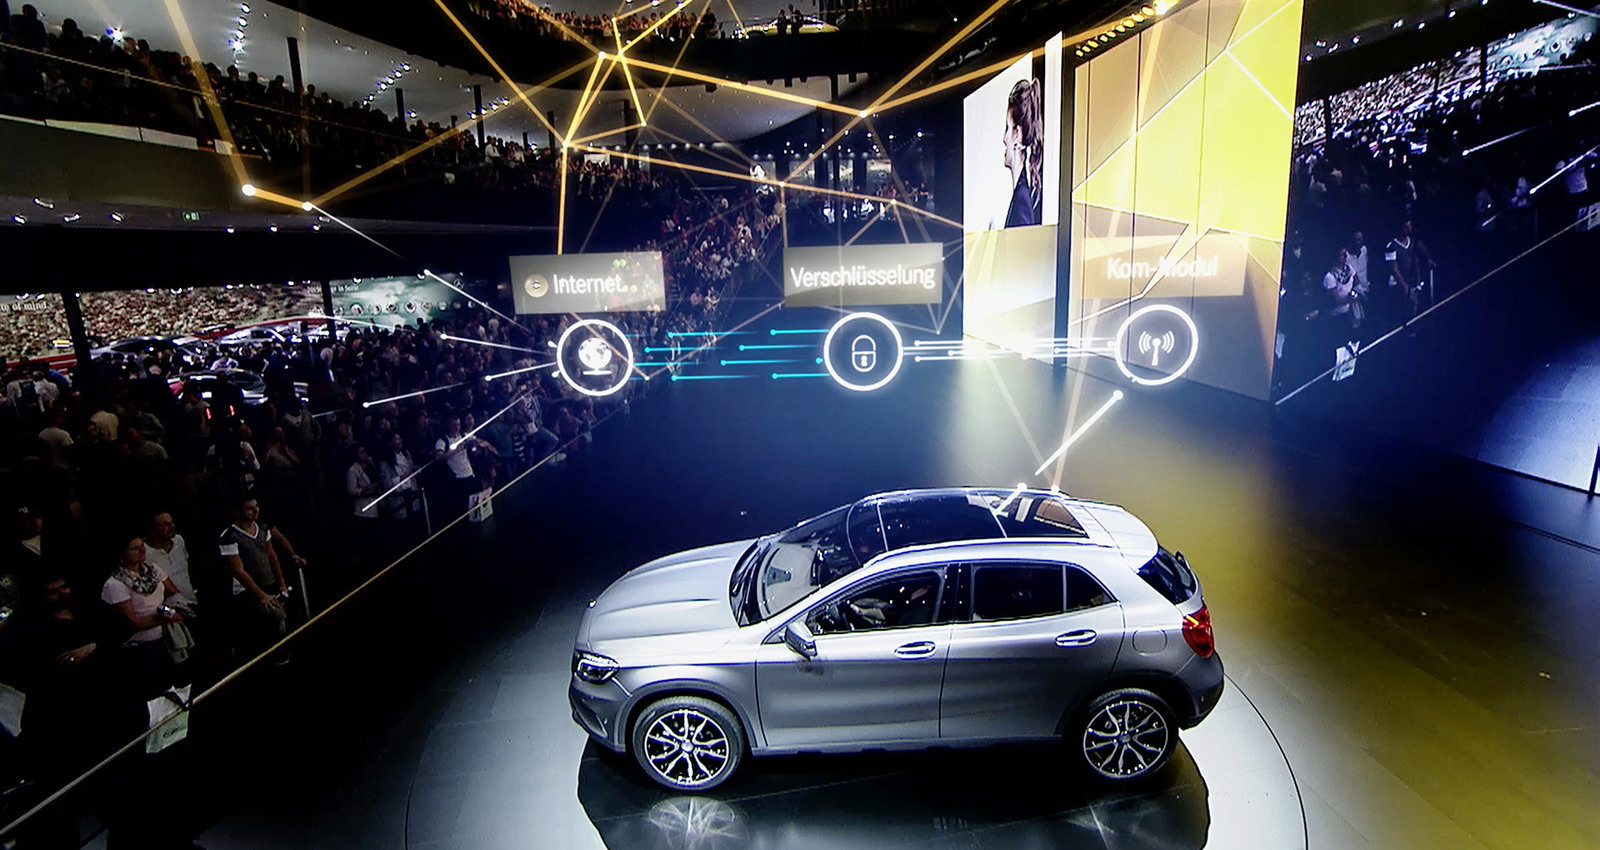 Mercedes-Benz at IAA 2015 / Mercedes Live! / Digital presentation with spidercam and augmented reality